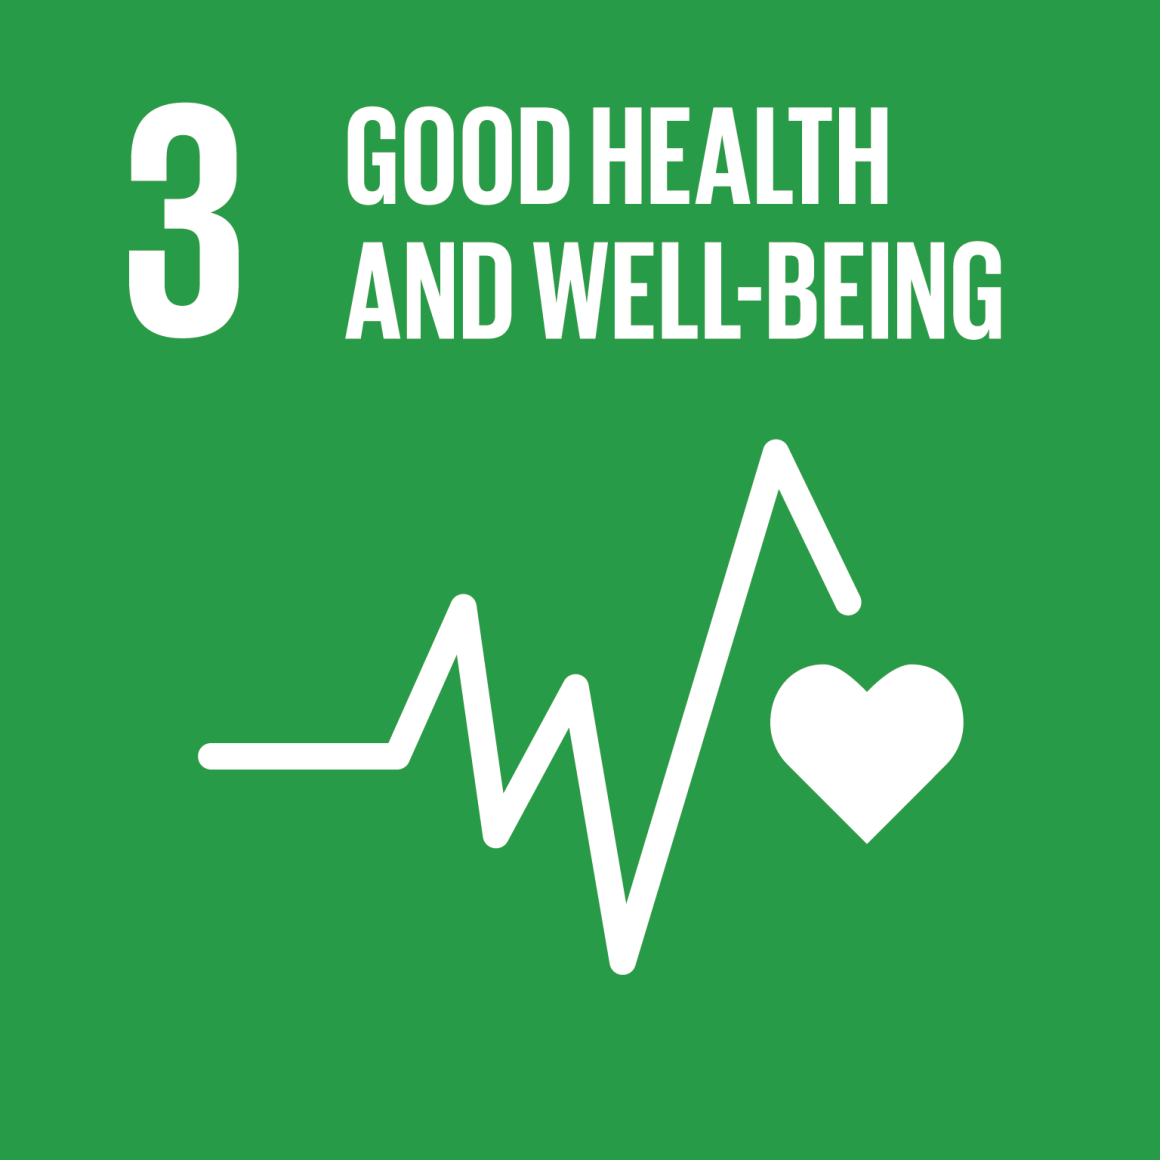 Goal 3 Good Health And Well-Being